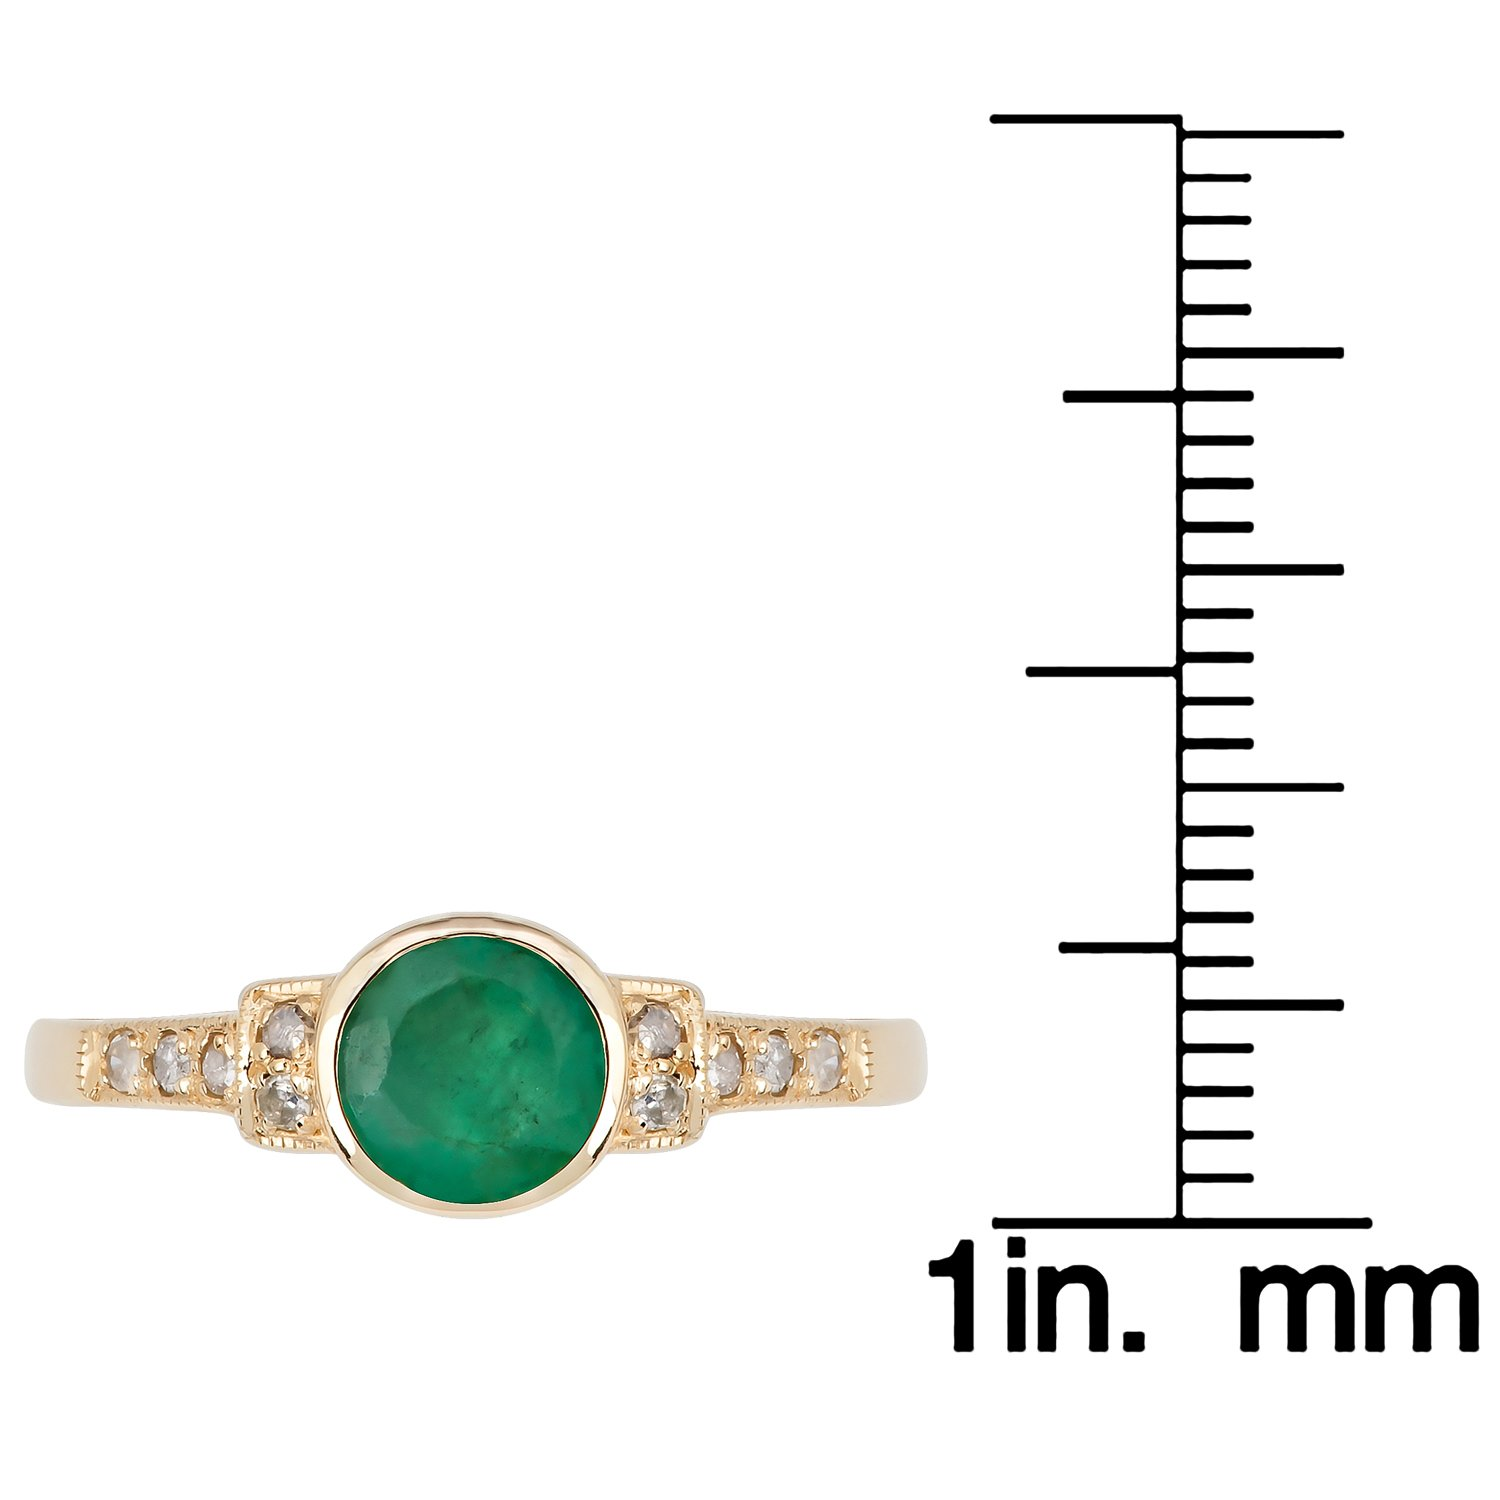 treated il fullxfull listing cut stone single heat engagement emerald zoom ring palladium hk en